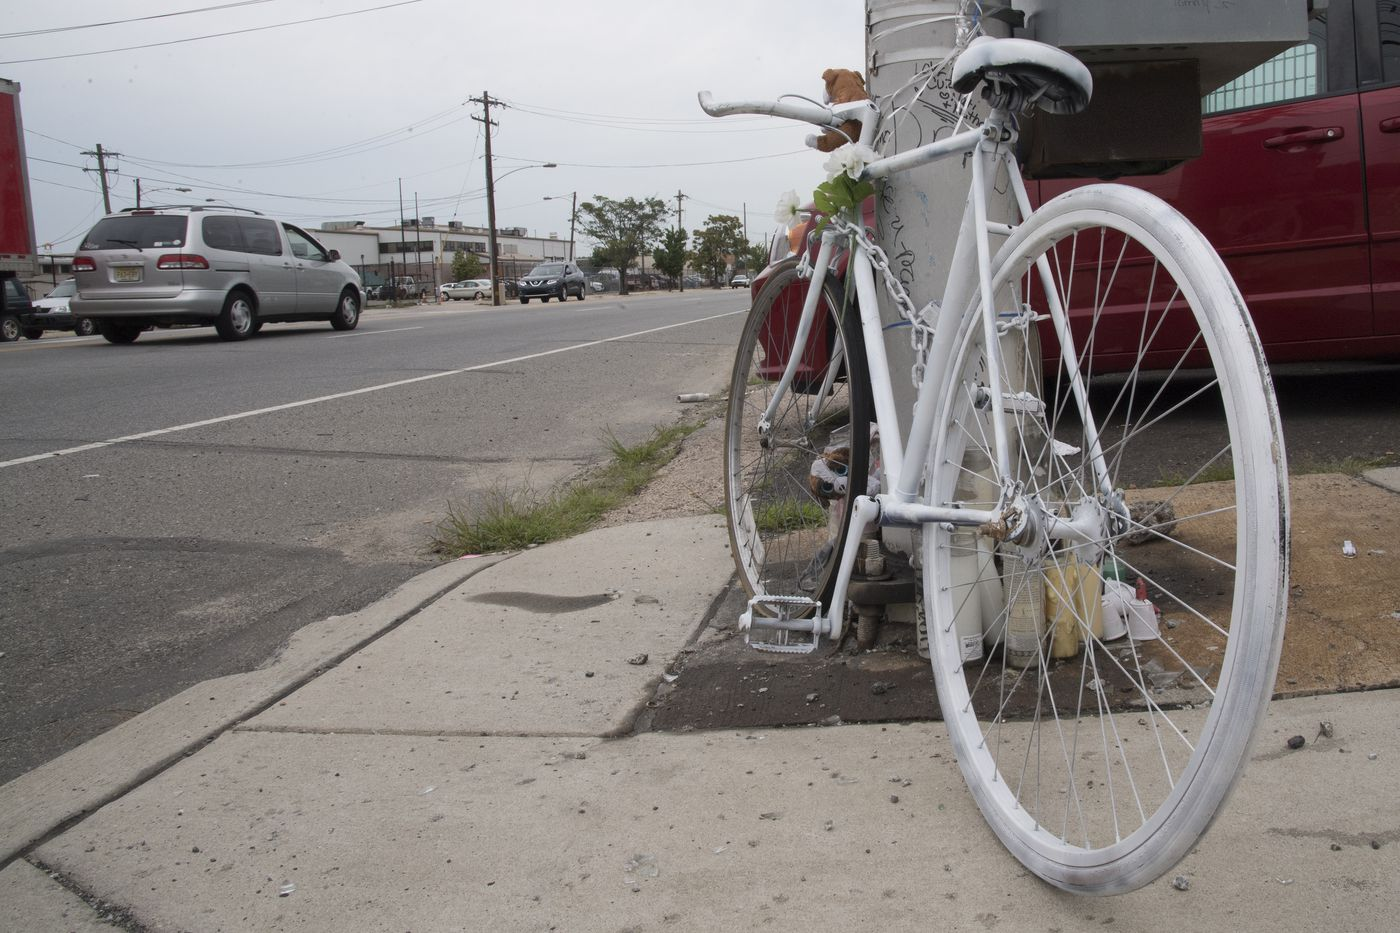 A white painted bike serves as a memorial for a cyclist killed at the intersection of Whitaker Avenue and Luzerne Street in Philadelphia.